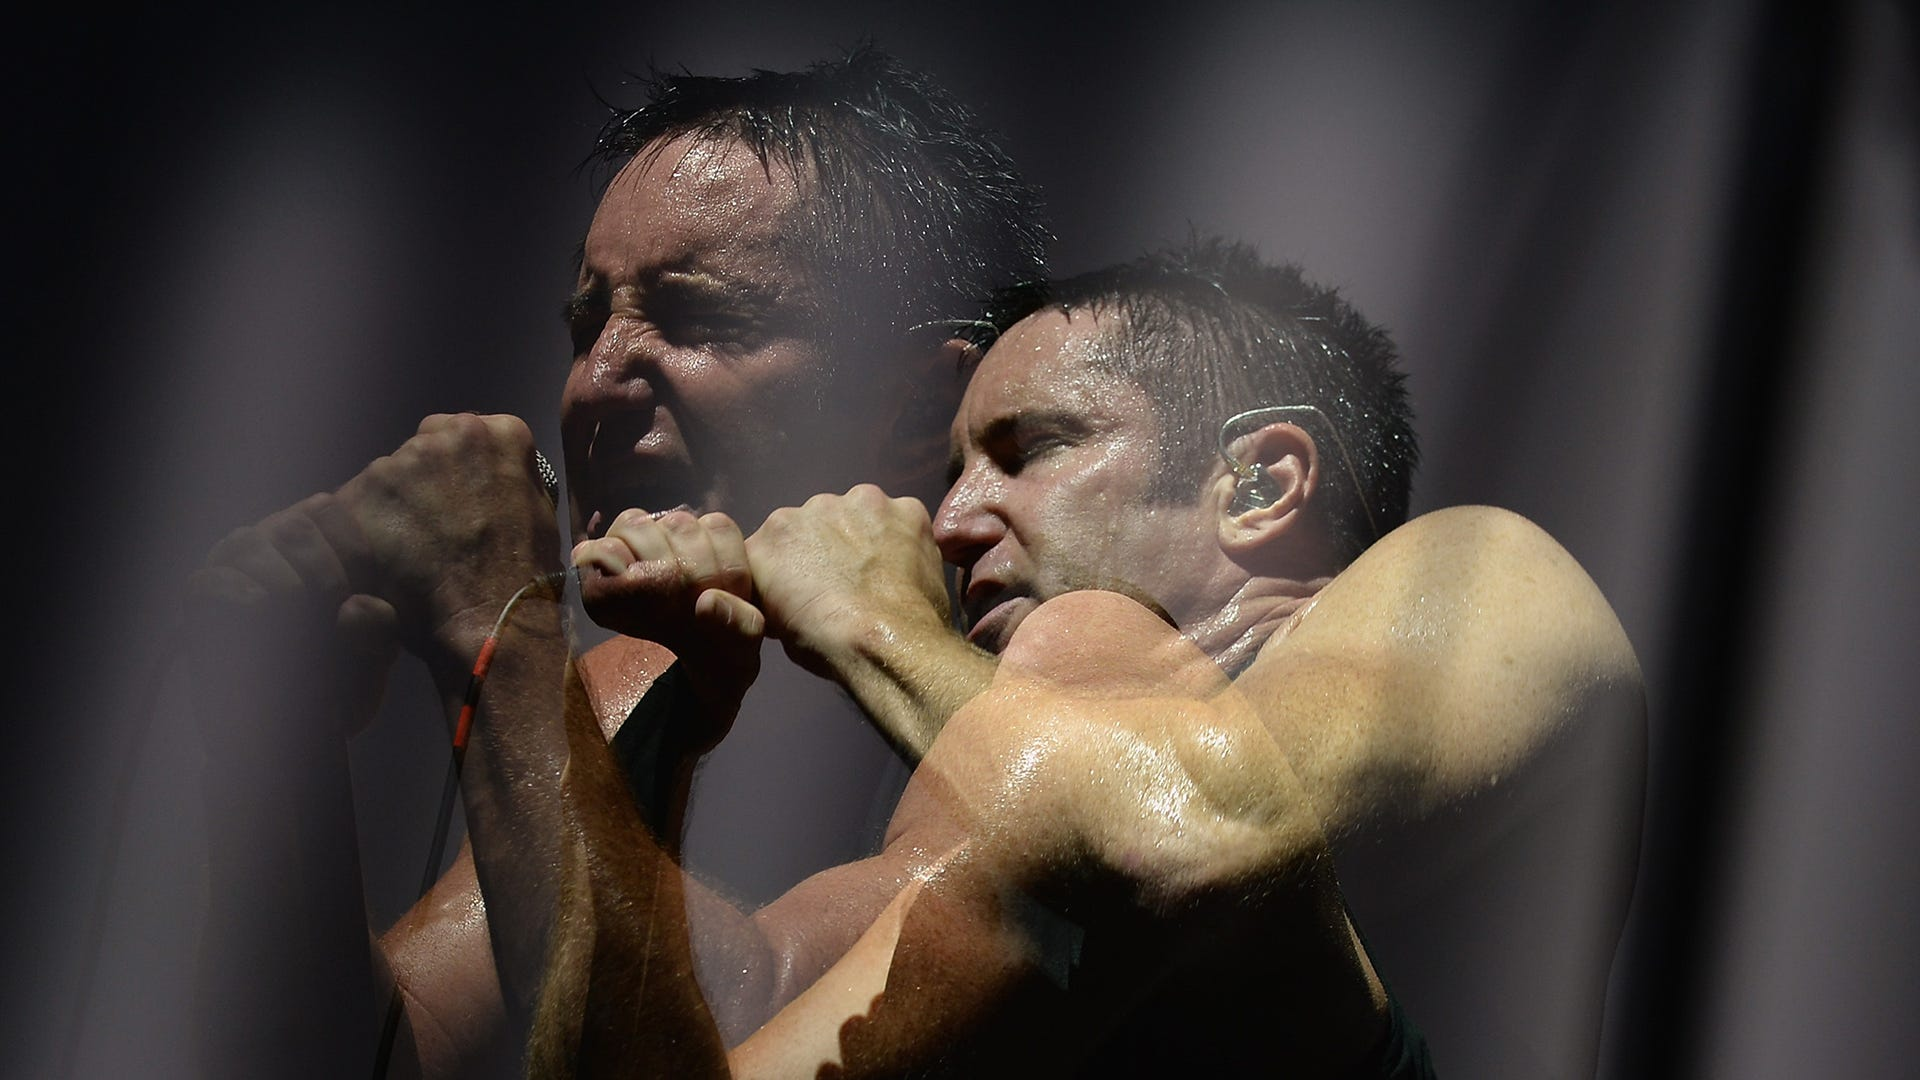 Proving 'we're in this together,' Nine Inch Nails cancel tour dates amid COVID-19 Delta spike